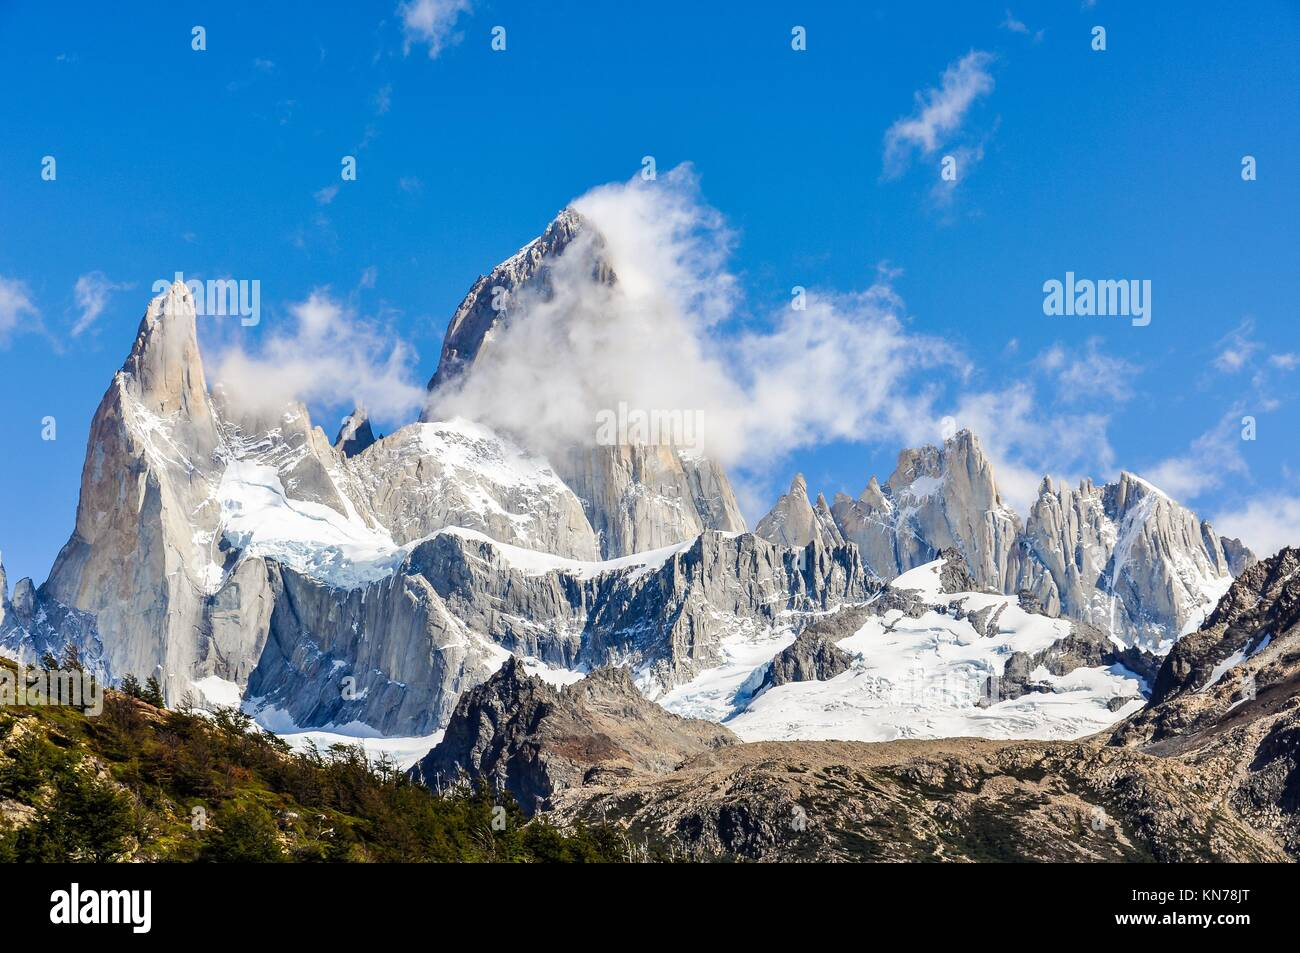 View of the peaks, Fitz Roy Walk, El Chalten, Patagonia, Argentina. - Stock Image